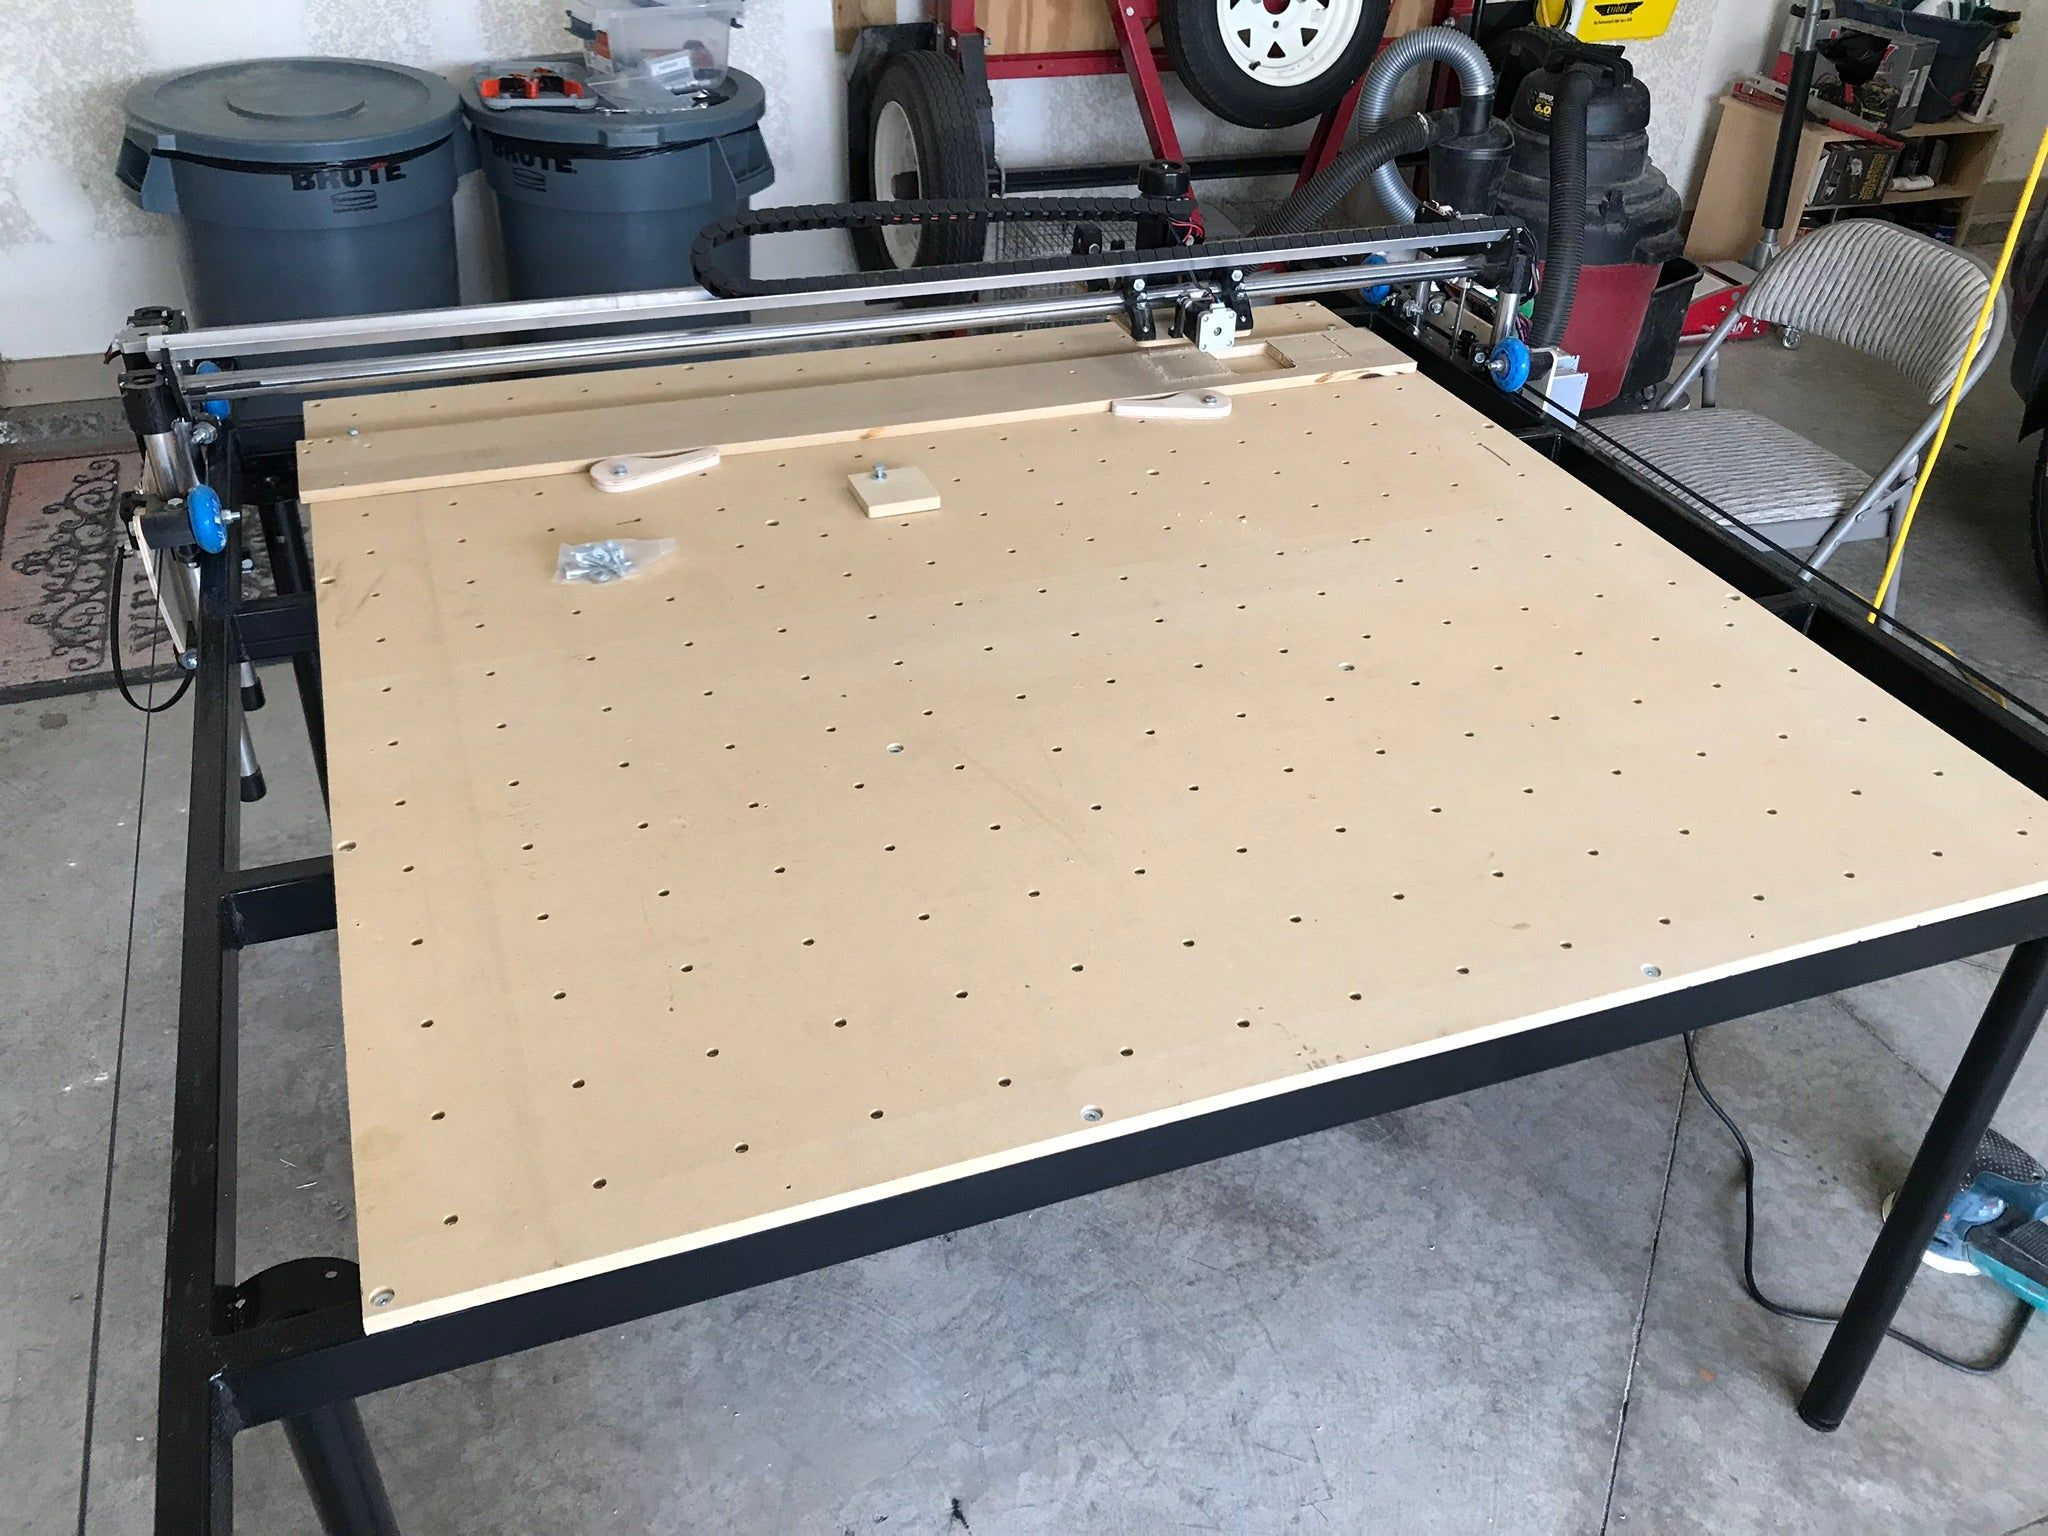 LowRider CNC Full Sheet 4x8 CNC Router by swholmstead in